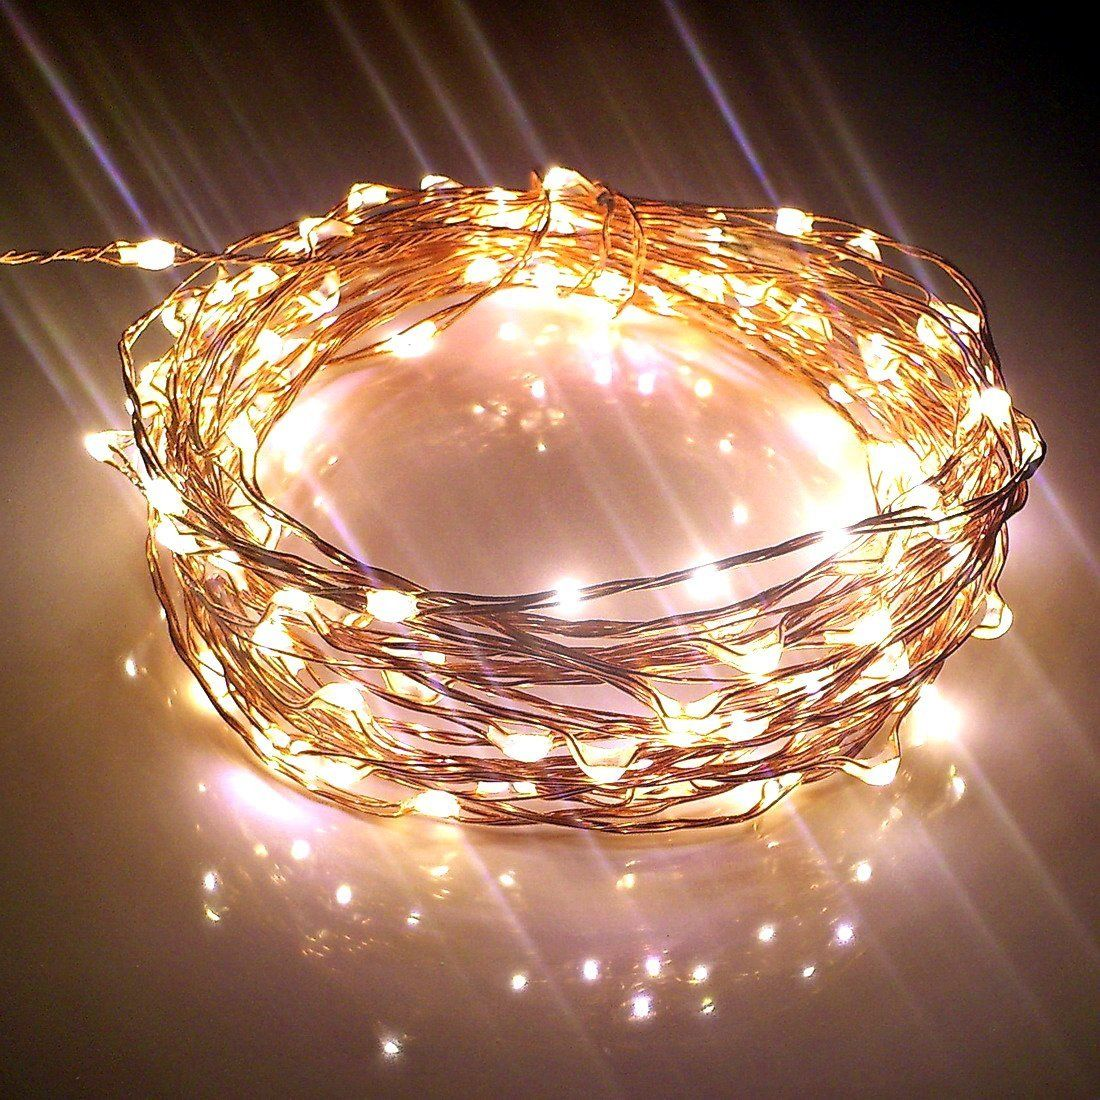 Amazon Com Starry String Lights W 120 Warm White Leds On